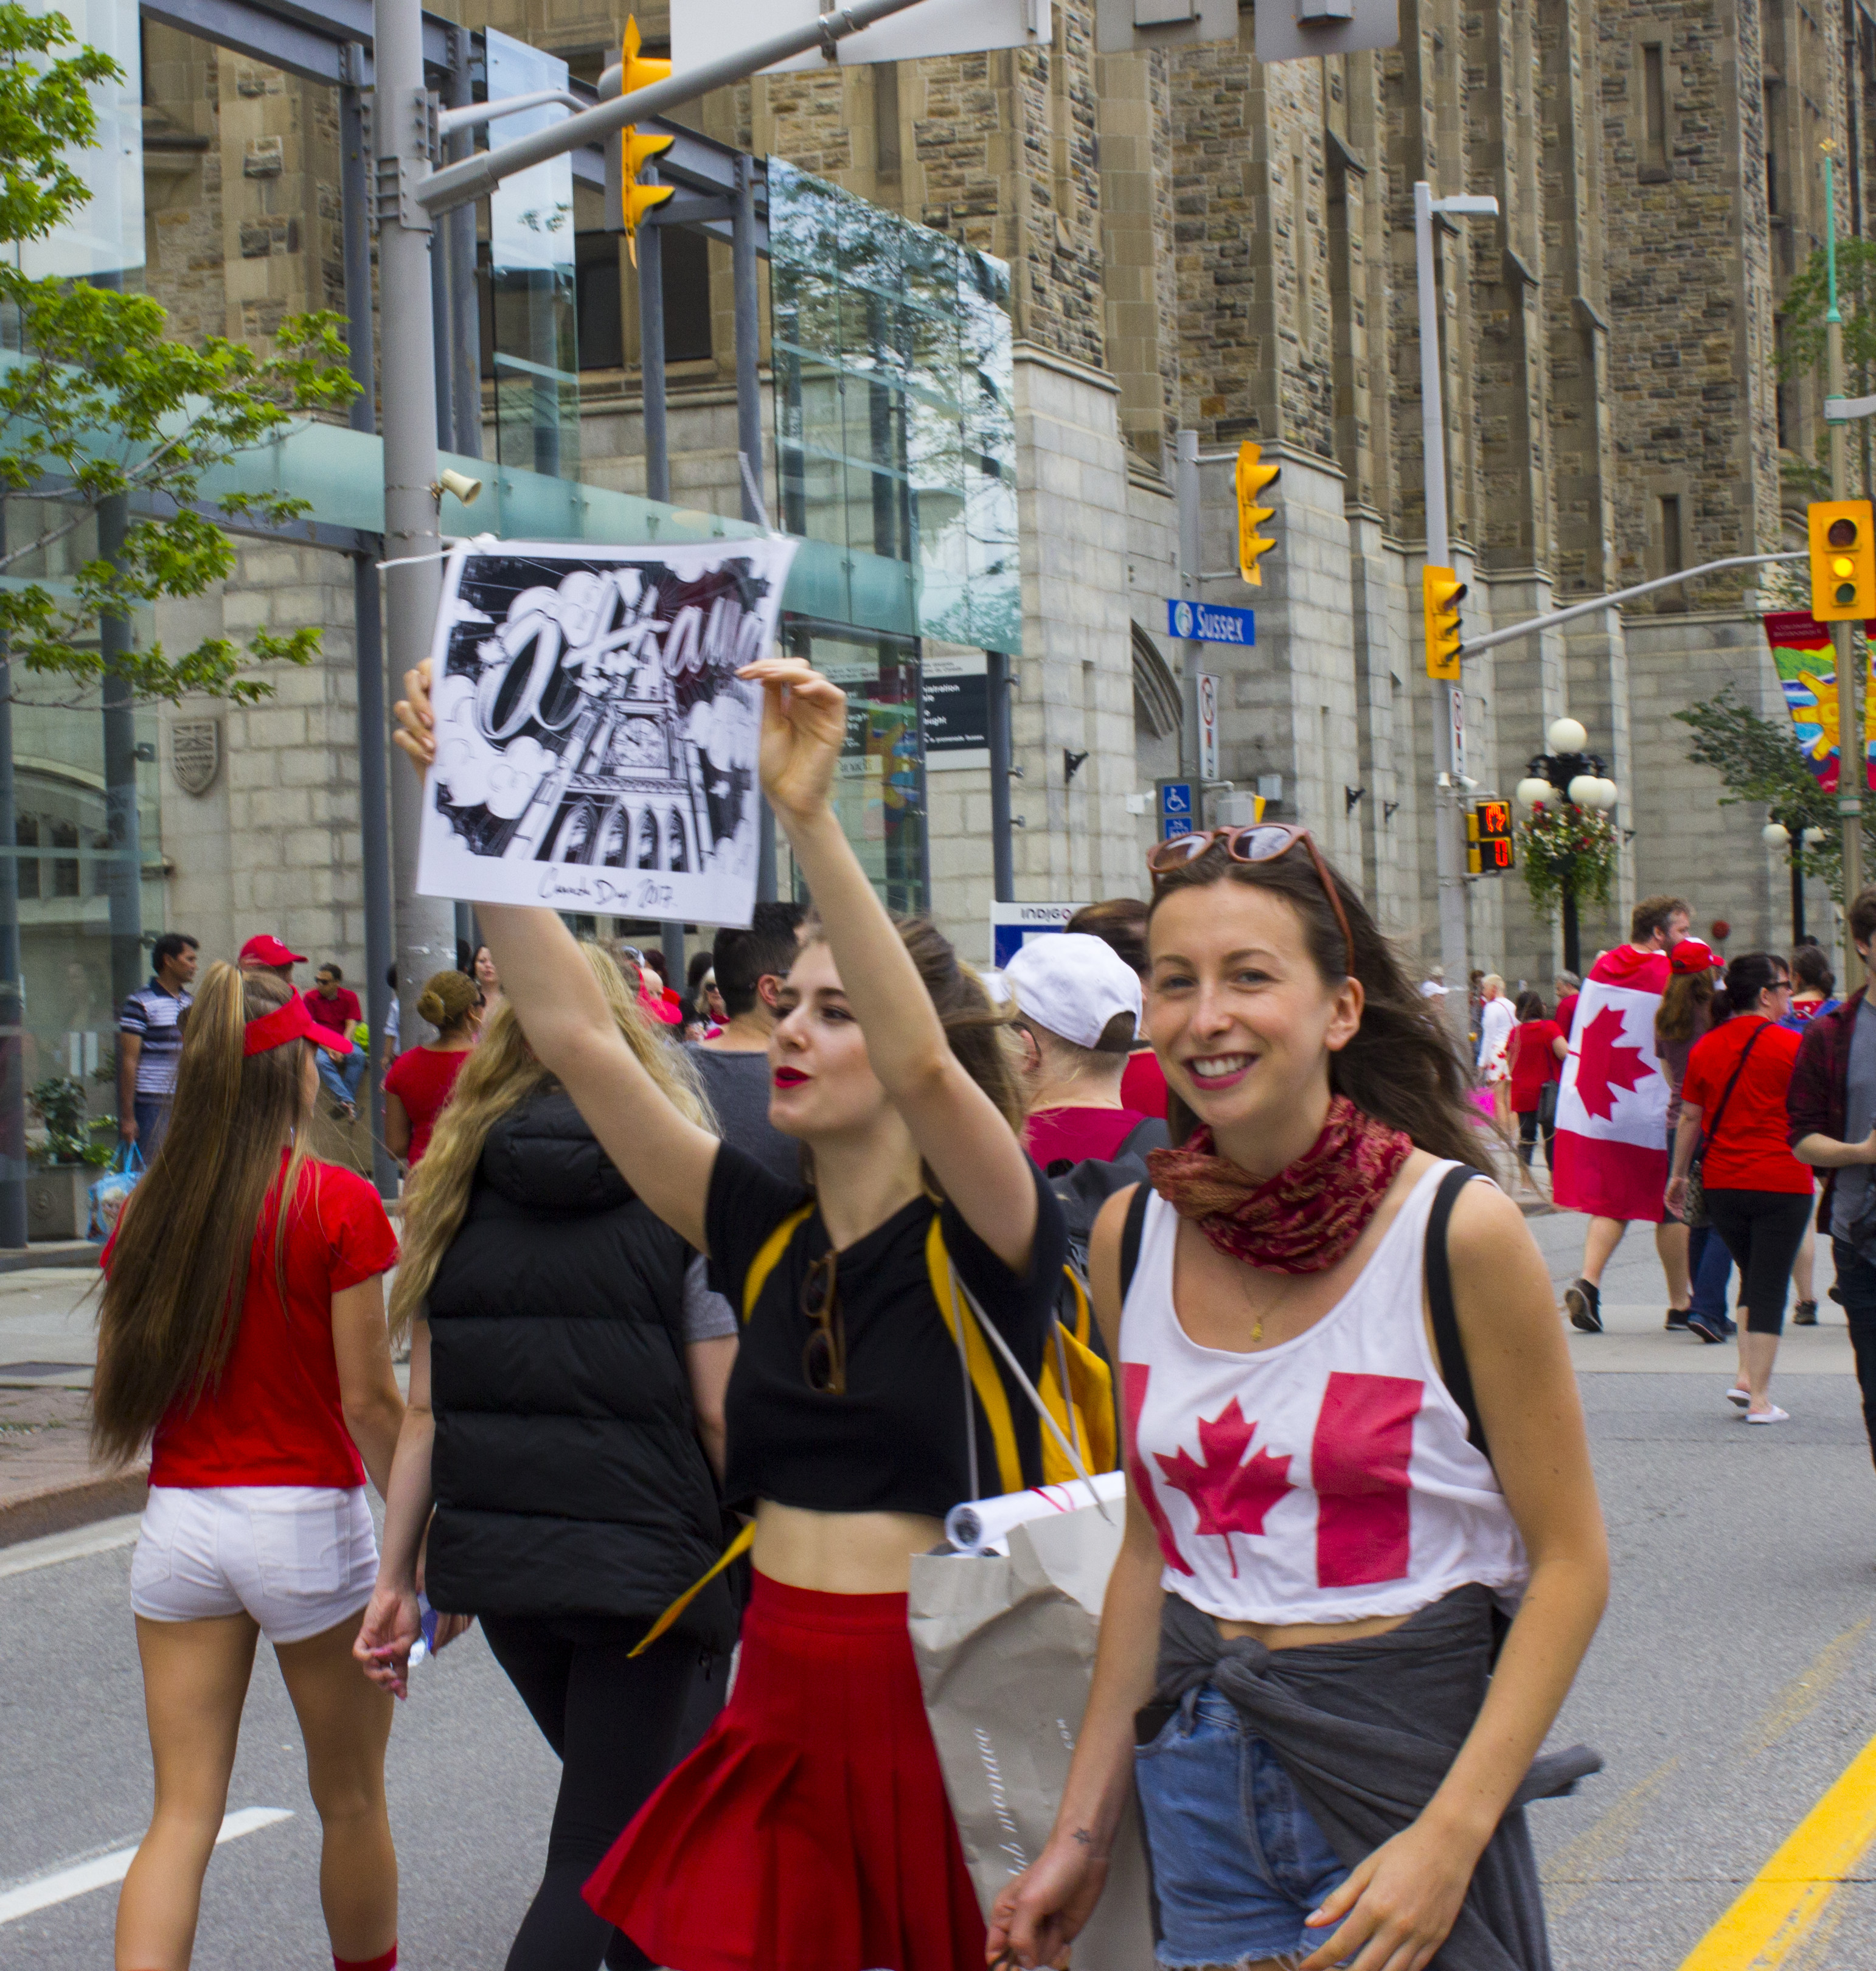 People at Canada Day celebrations